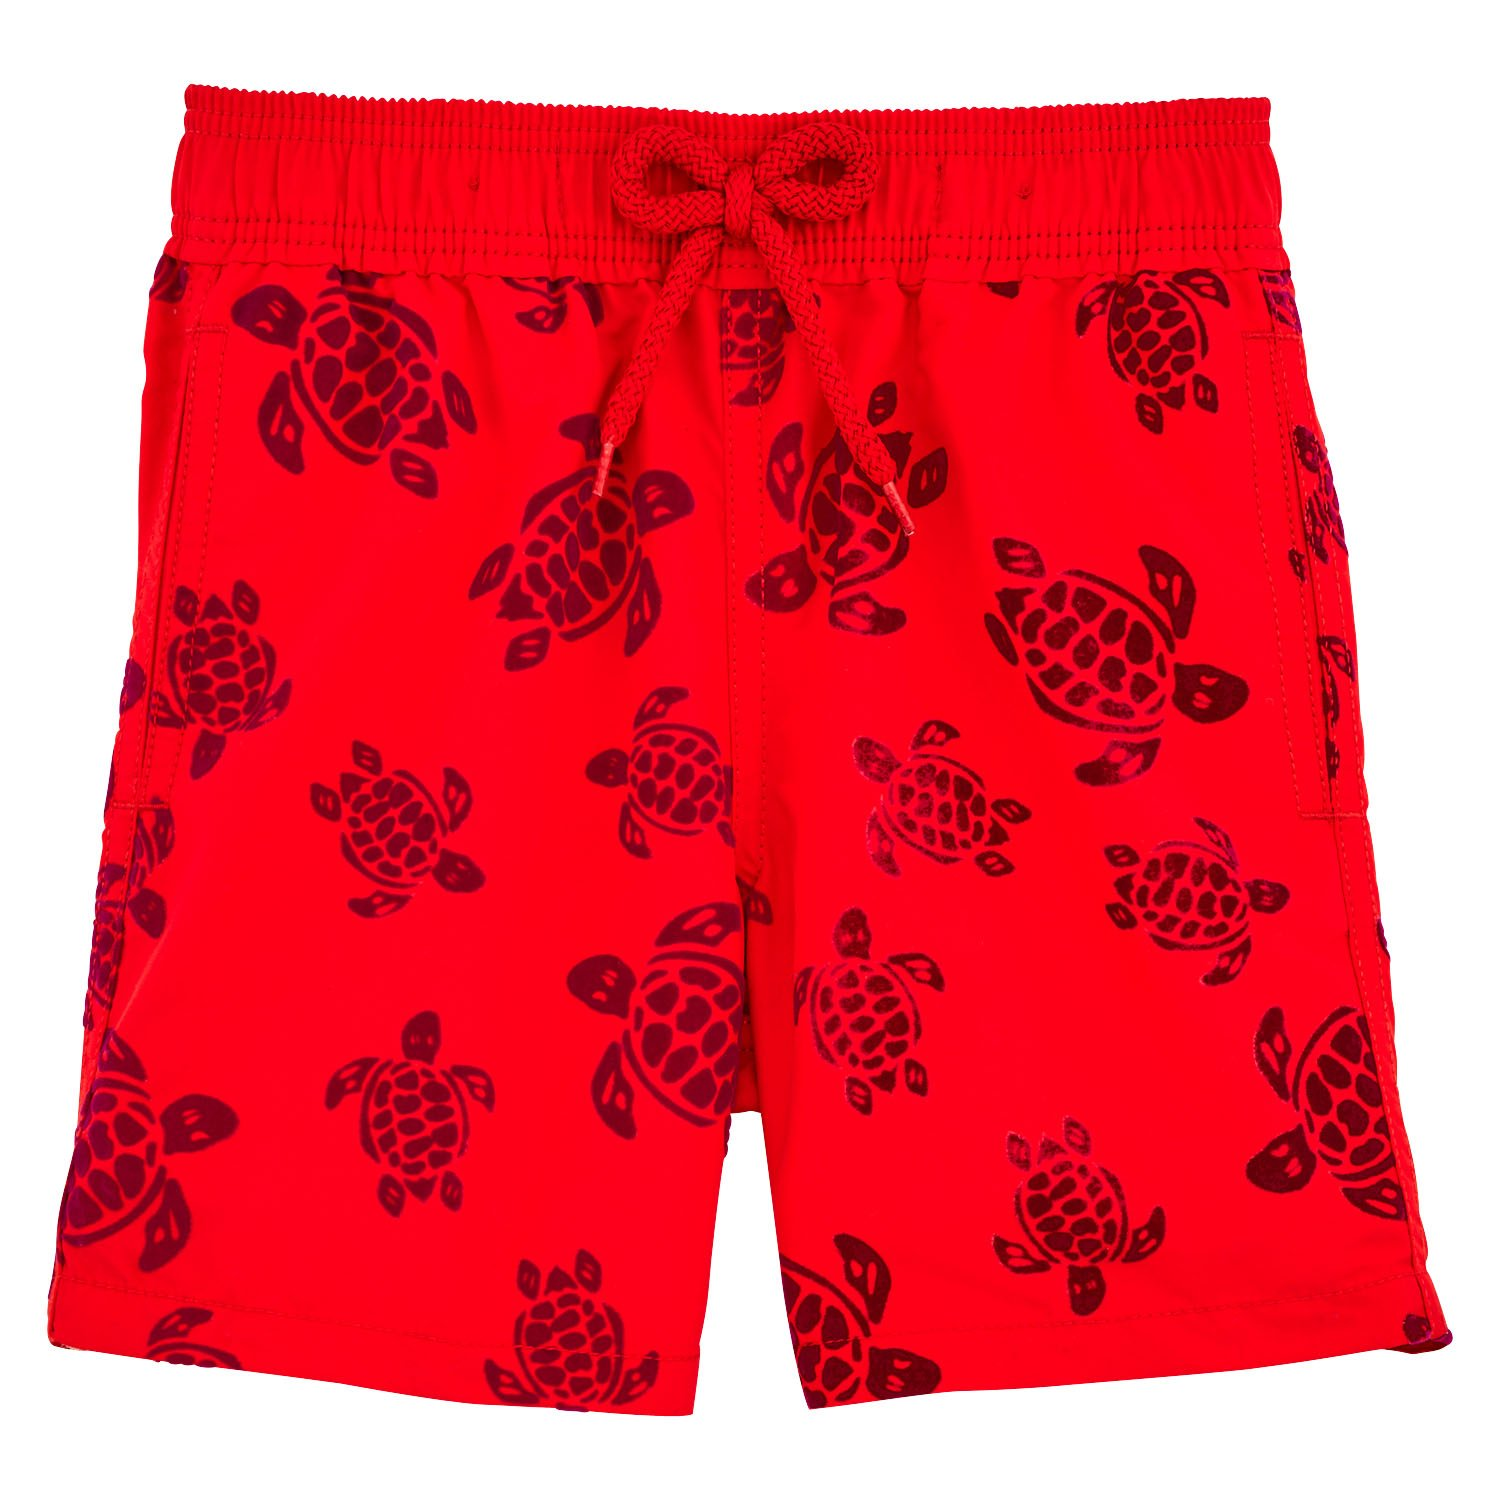 Vilebrequin Tortues Flockées Swim Shorts - Boys - poppy red - 2Yrs